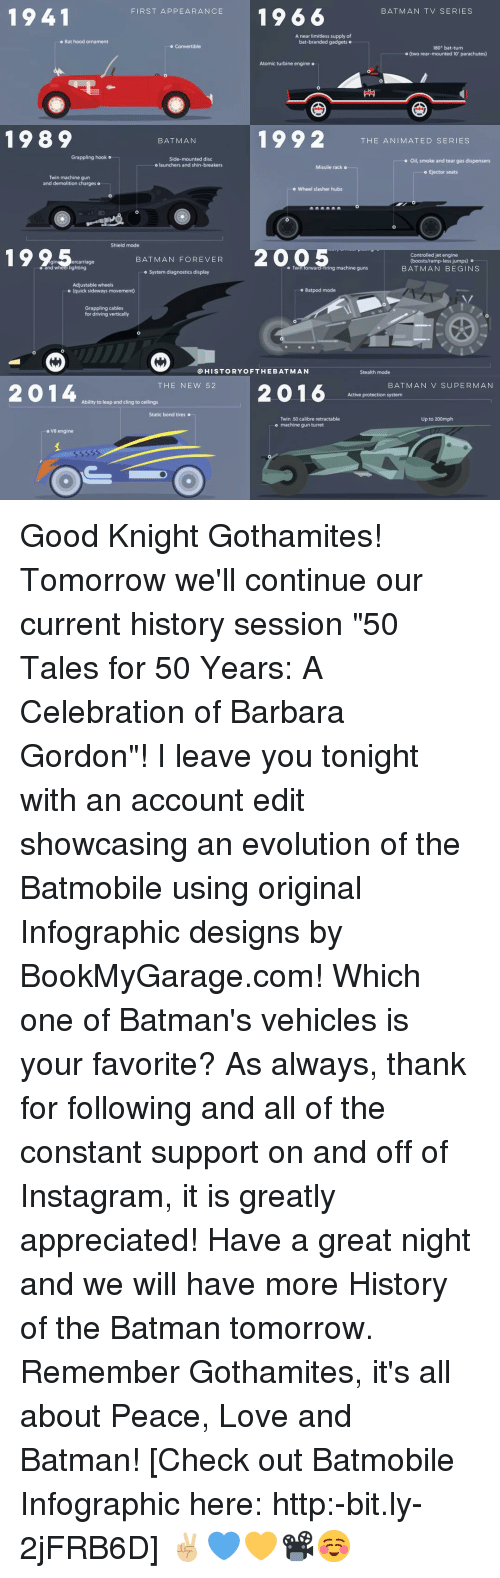 """statics: 1941  FIRST APPEARANCE  19 66  BAT MAN TV SERIES  A near limitless supply of  o Bat hood ornament  bat-branded gadgets o  Convertible  180. bat turn  o (two rear-mounted 10' parachutes)  Atomic turbine engine o  1992  1989  BATMAN  THE ANIMATED SERIES  Grappling hook o  Side-mounted disc  o oil, smoke and tear gas dispensers  o launchers and shin-breakers  Missile rack o  o Ejector seats  Twin machine gun  and demolition charges o  -o Wheel slasher hubs  1995  ercarriage  Shield mode  20 Twin forward-tiring machine guns  BAT MAN FOREVER  o Controlled jet engine  (boosts/ramp-less jumps) o  BAT MAN BEGINS  o System diagnostics display  Adjustable wheels  o Bat pod mode  o (quick sideways movement)  Grappling cables  for driving vertically  HIS TO RYO FTHE BAT MAN  Stealth mode  THE NEW 52  BAT MAN V SUPERMAN  2014  2016  Active protection system  Ability to leap and cling to ceilings  Static bond tires o  Twin 50 calibre retractable  Up to 200mph  o machine gun turret  o V8 engine Good Knight Gothamites! Tomorrow we'll continue our current history session """"50 Tales for 50 Years: A Celebration of Barbara Gordon""""! I leave you tonight with an account edit showcasing an evolution of the Batmobile using original Infographic designs by BookMyGarage.com! Which one of Batman's vehicles is your favorite? As always, thank for following and all of the constant support on and off of Instagram, it is greatly appreciated! Have a great night and we will have more History of the Batman tomorrow. Remember Gothamites, it's all about Peace, Love and Batman! [Check out Batmobile Infographic here: http:-bit.ly-2jFRB6D] ✌🏼️💙💛📽☺️"""